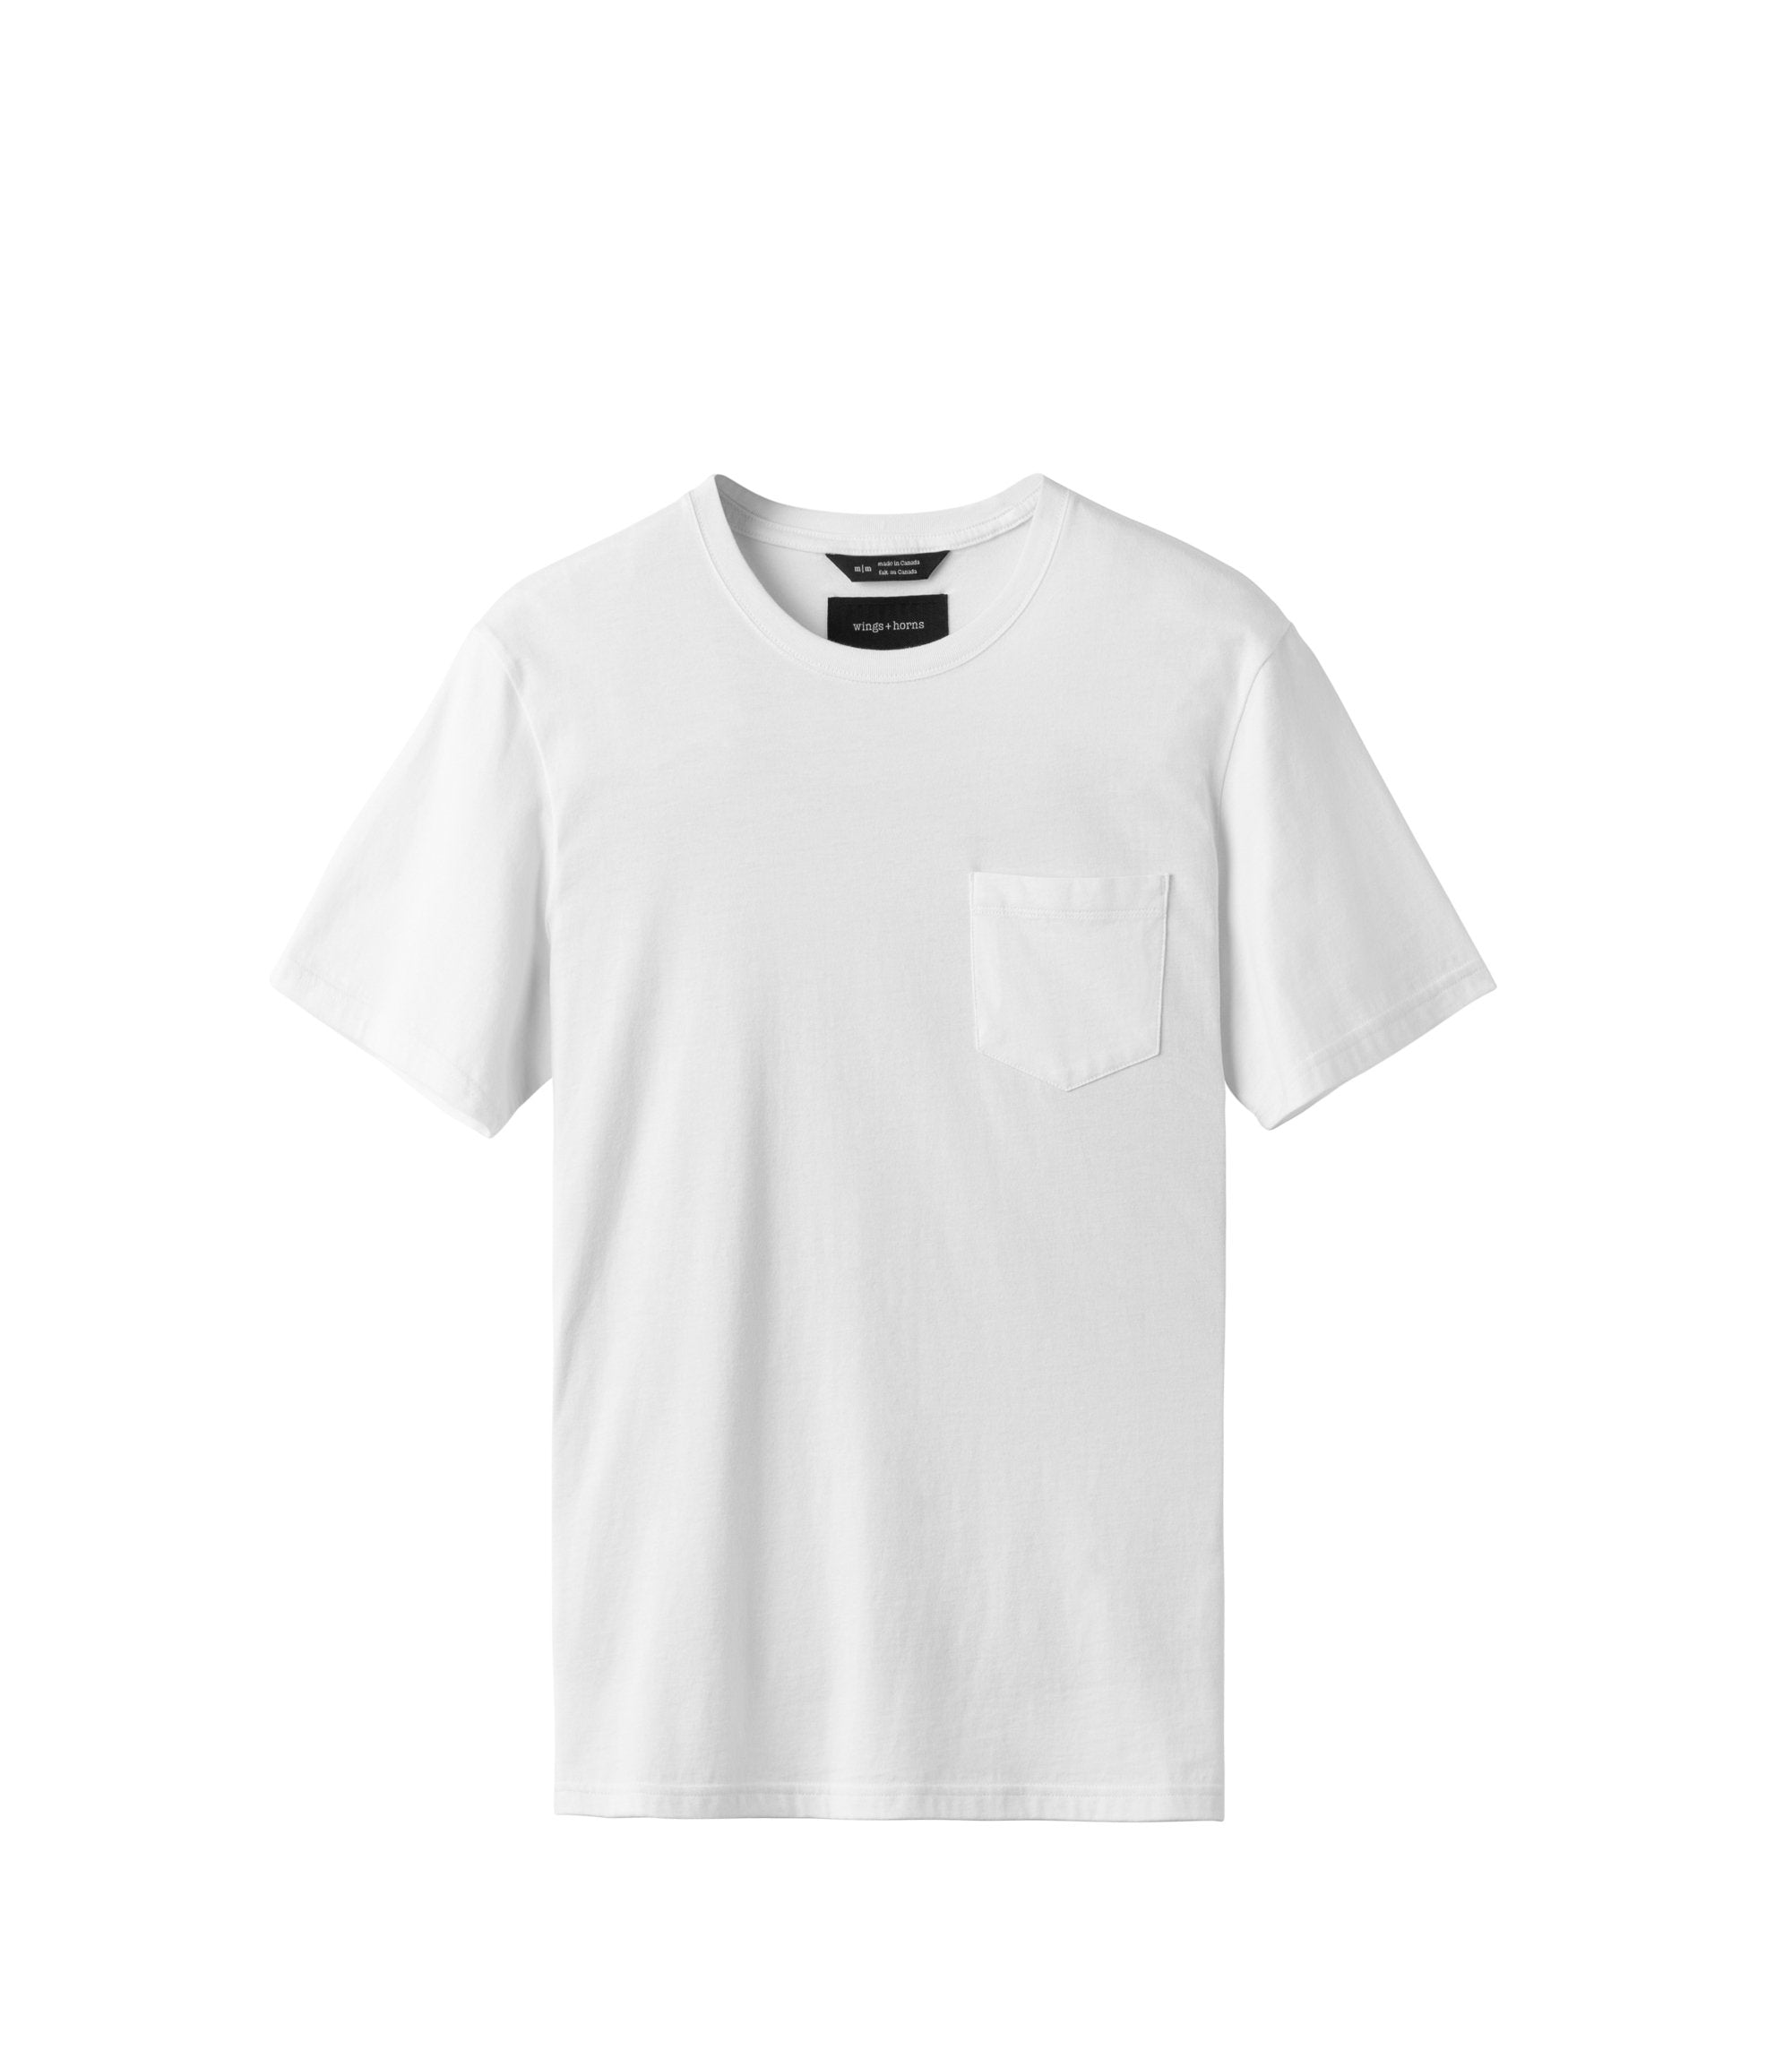 WINGS + HORNS M'S T-SHIRTS WHITE S ORIGINAL POCKET T-SHIRT